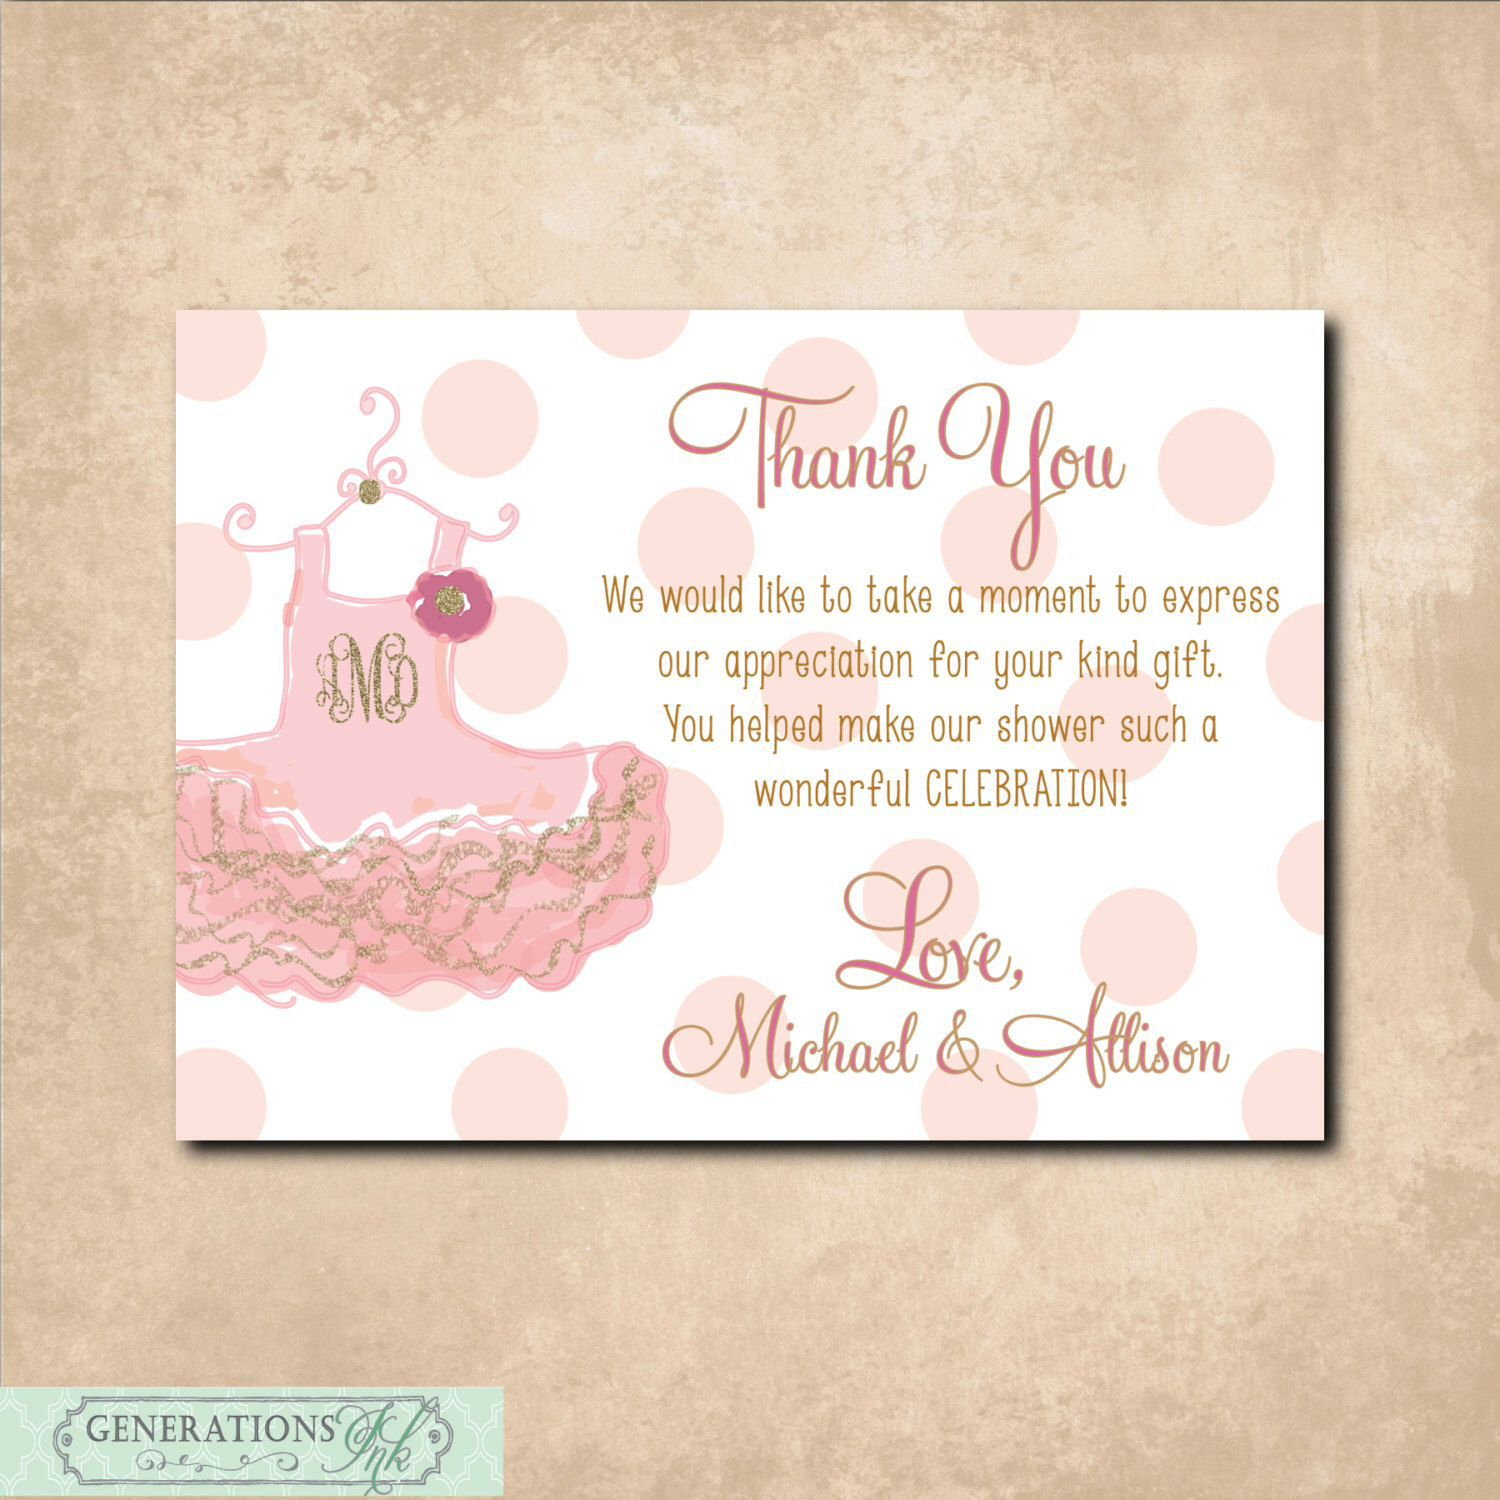 001 Magnificent Thank You Note Wording Baby Shower High Definition  For Hosting CardFull